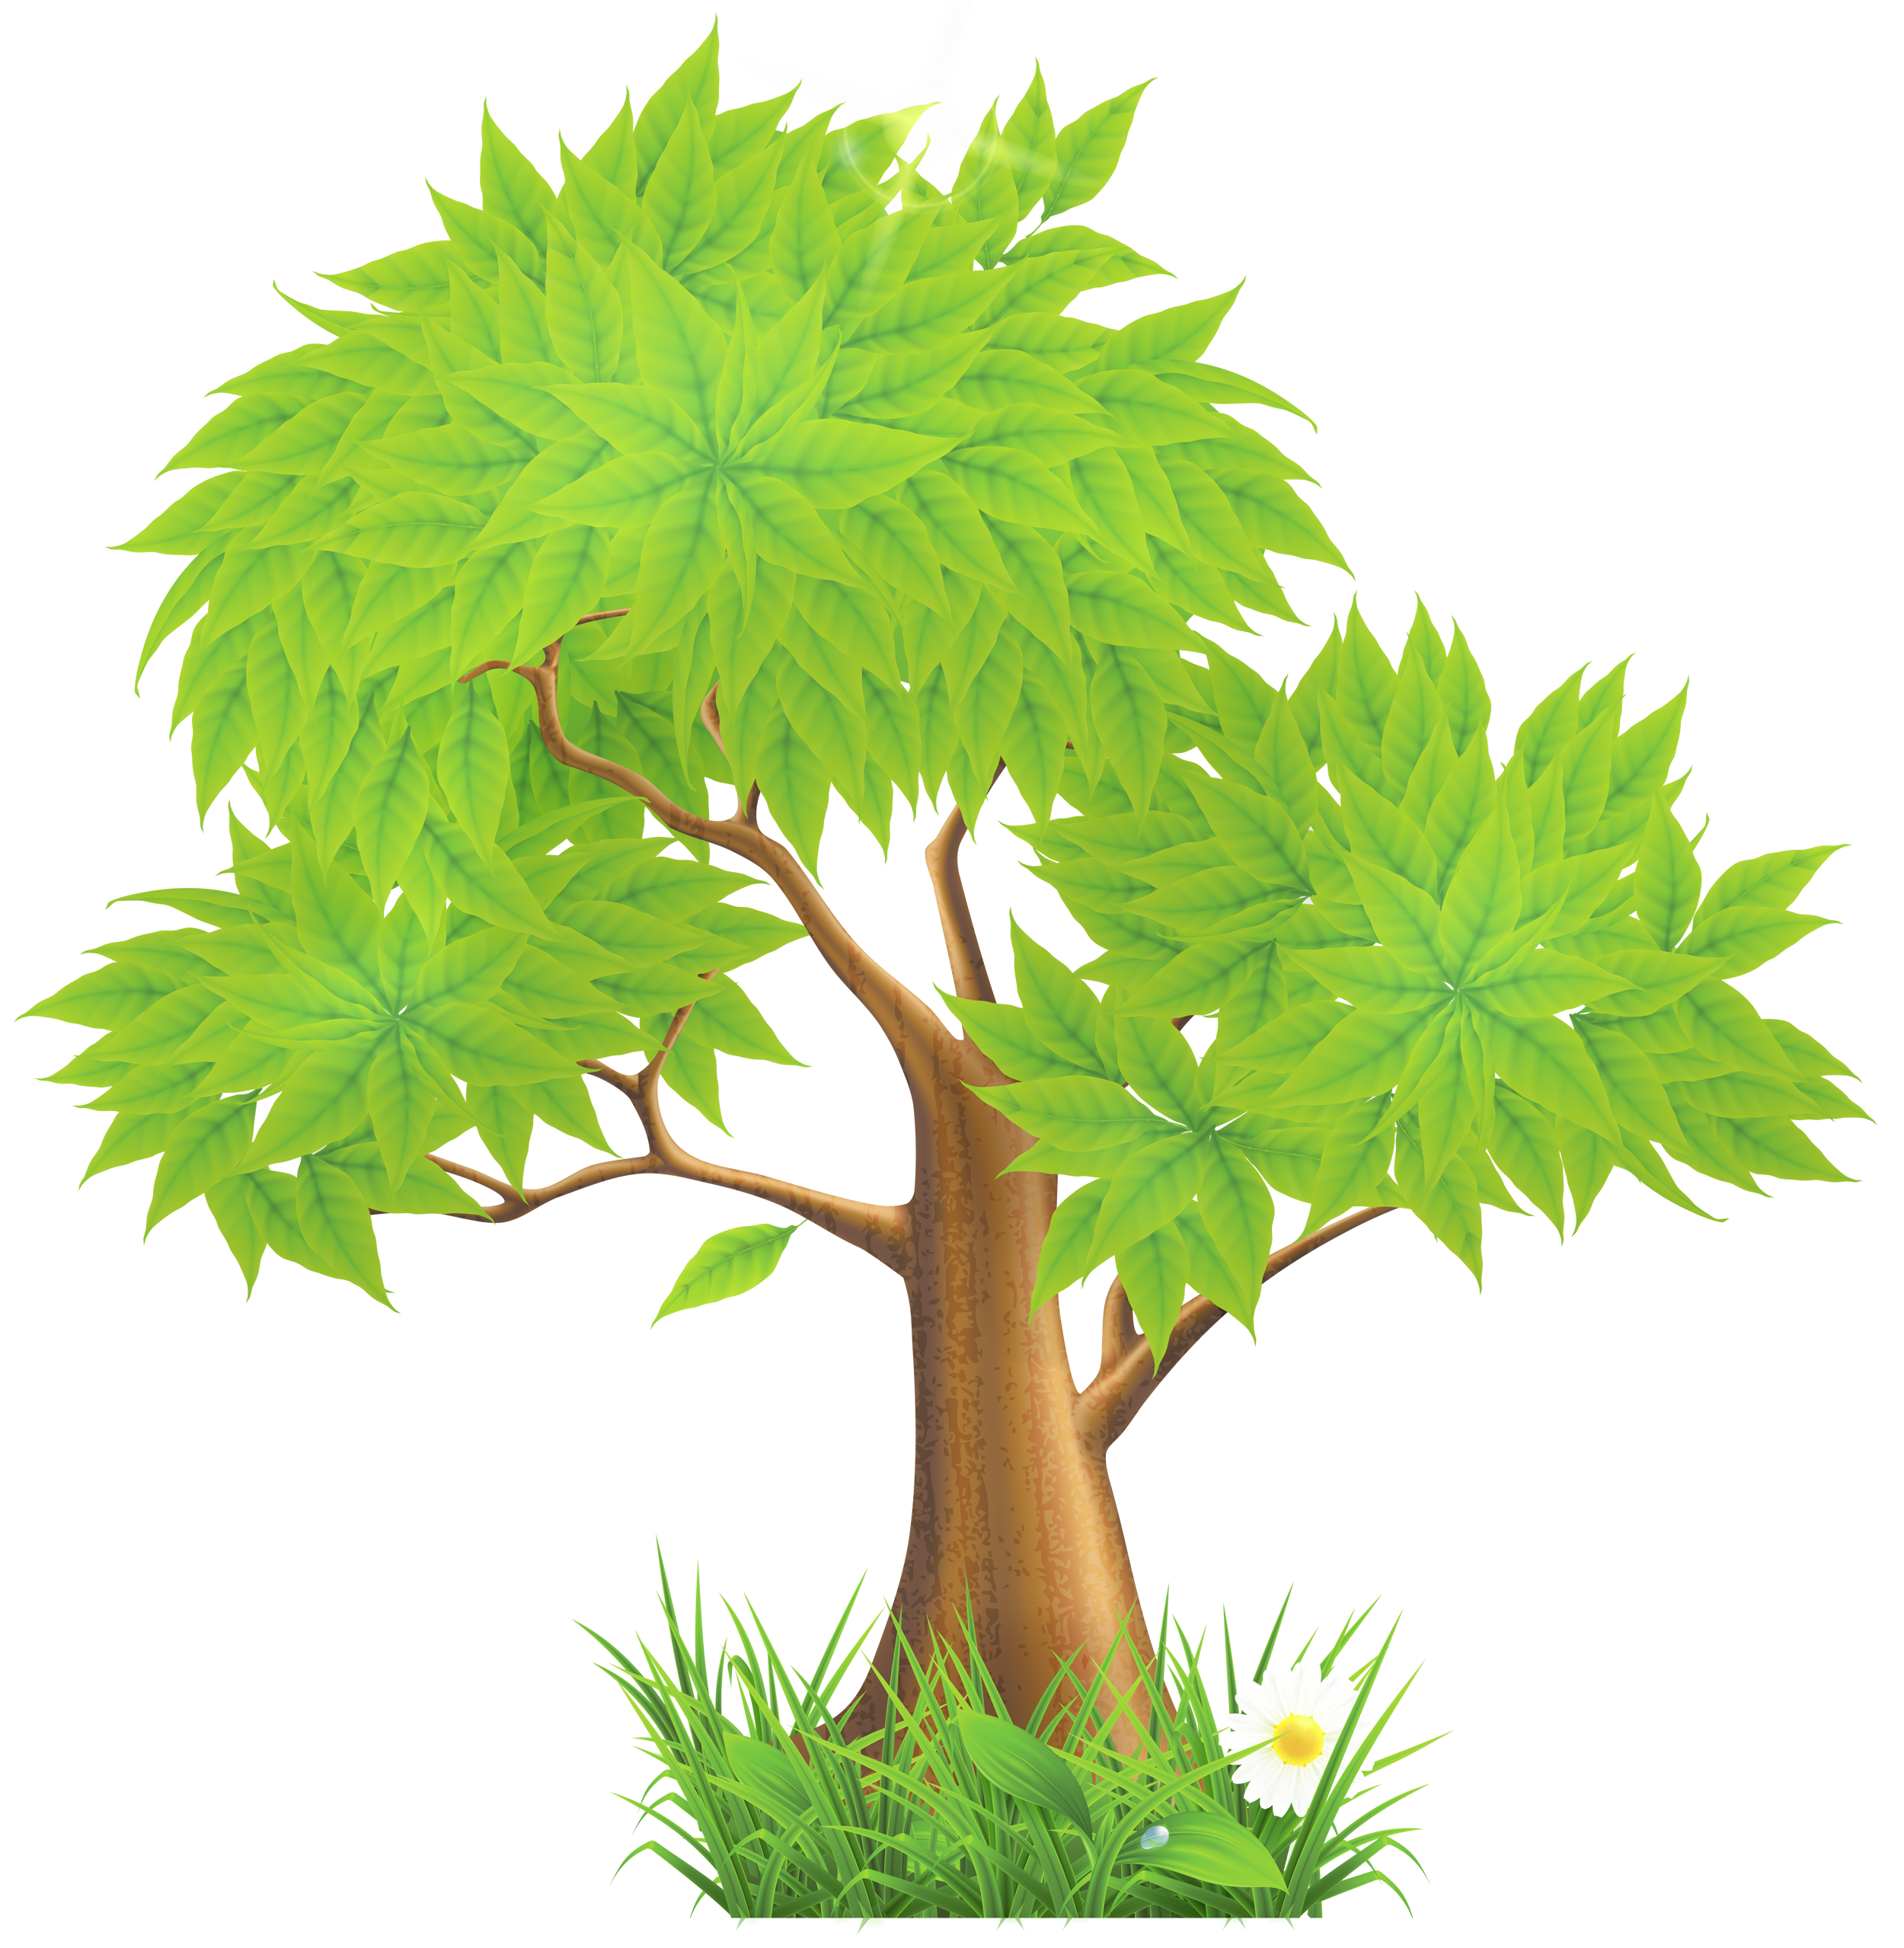 Rainforest Clipart Narra Picture 1972209 Rainforest Clipart Narra The gatekeepers to the pokémon league who will check the player's badges to decide if they are worthy to continue forward. webstockreview